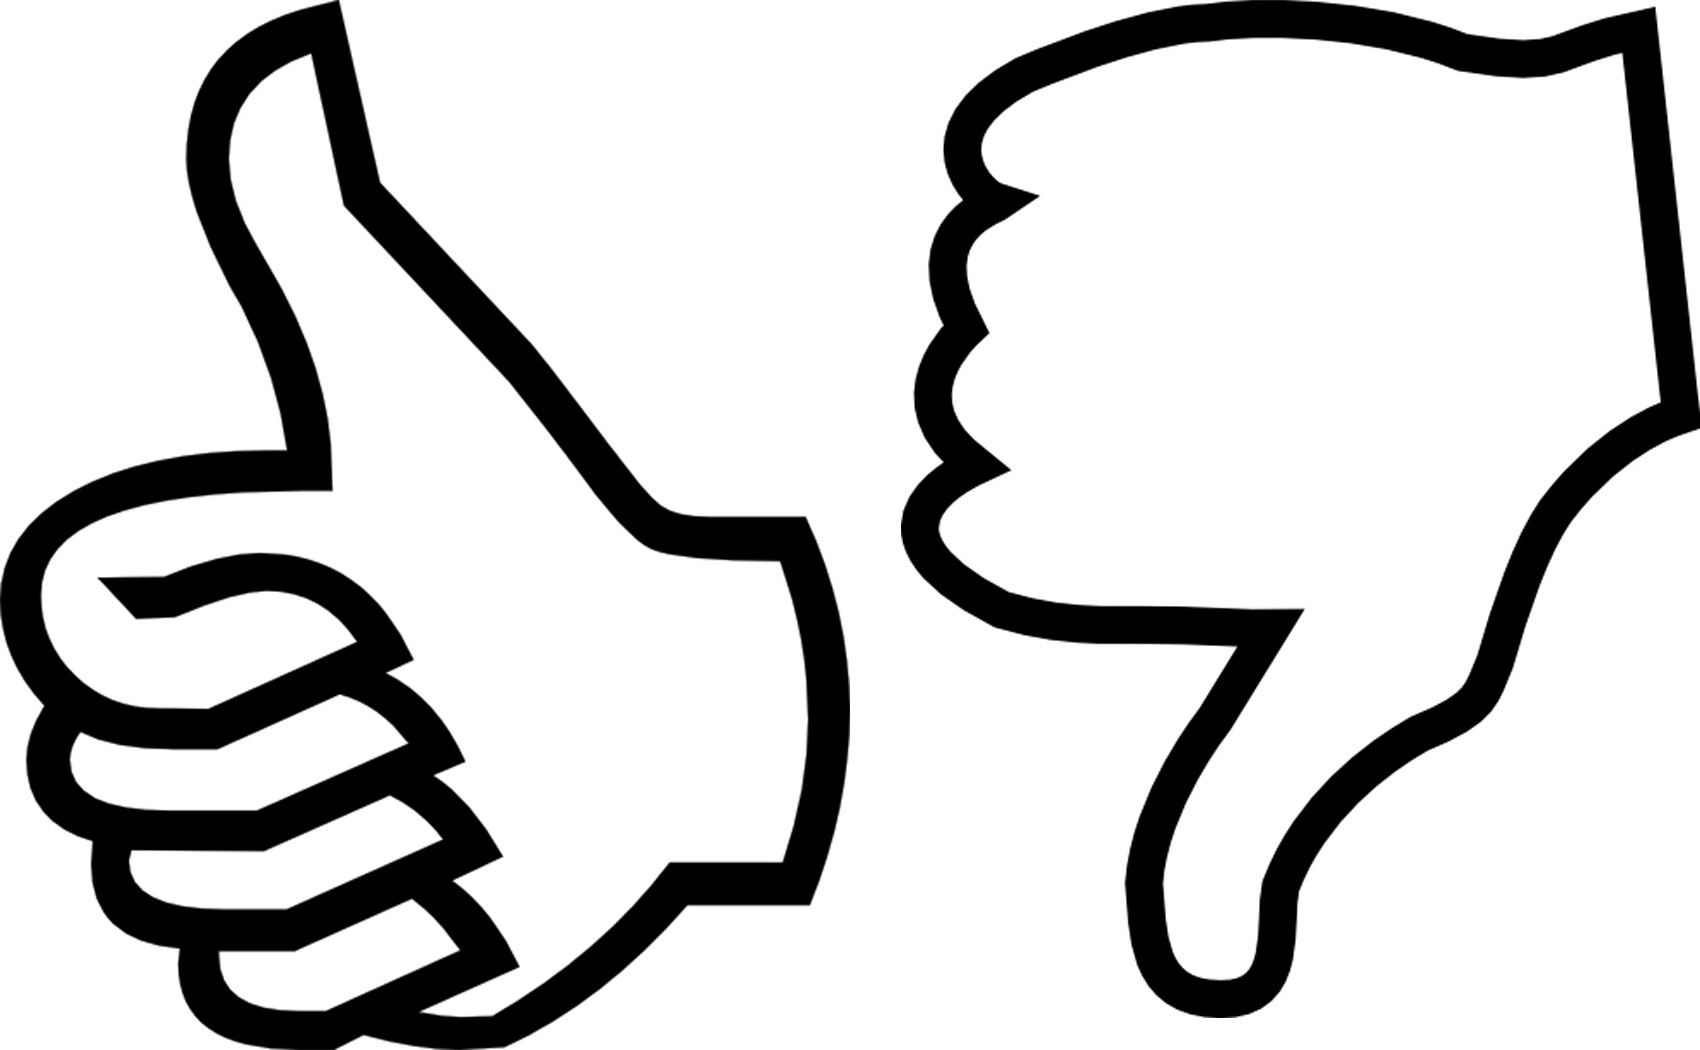 Thumbs up and thumbs down clipart 7 » Clipart Station.